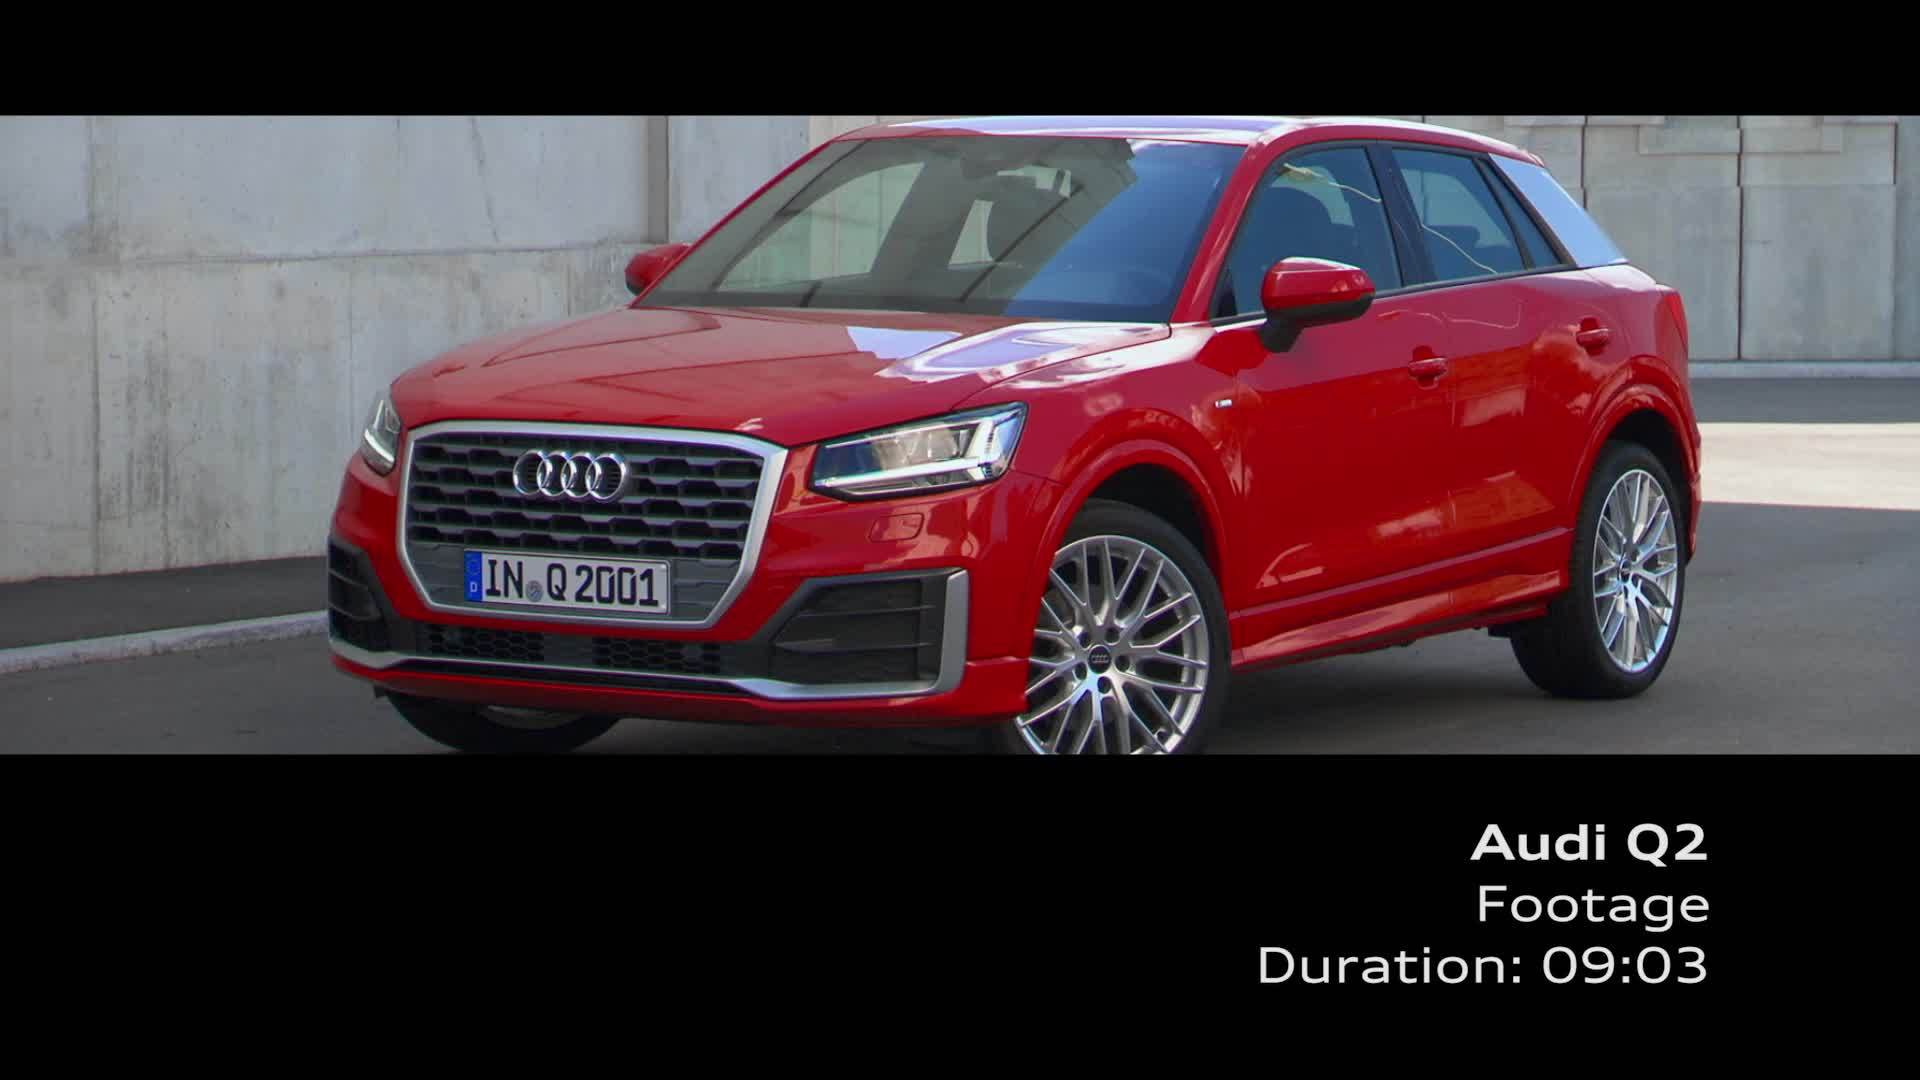 Audi Q2 - Footage on Location, Tango Red